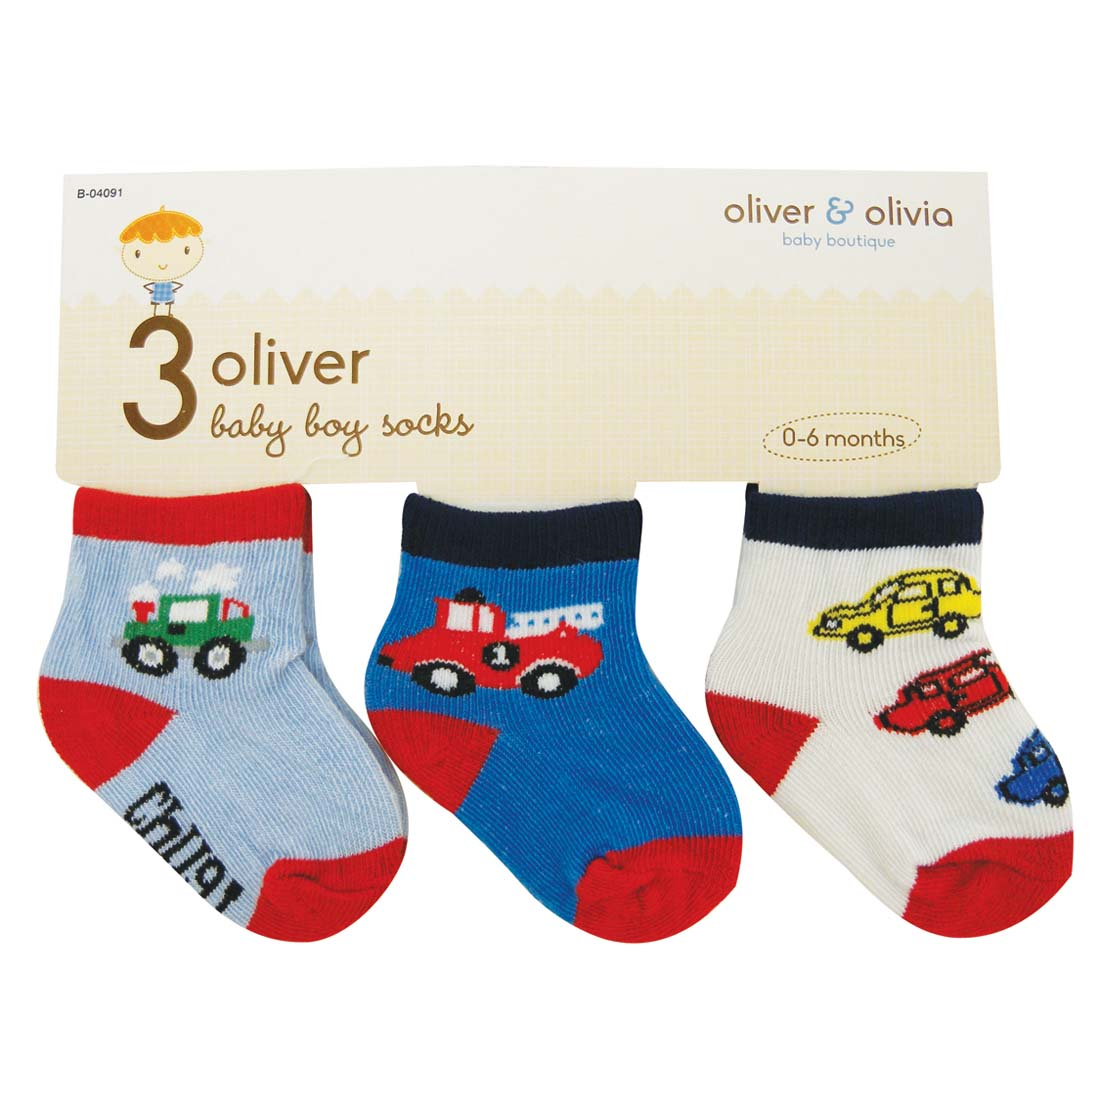 View BOY'S INFANT SOCKS 3 PAIR ASSORTED COLORS & DESIGNS SIZE 0-6 MONTHS